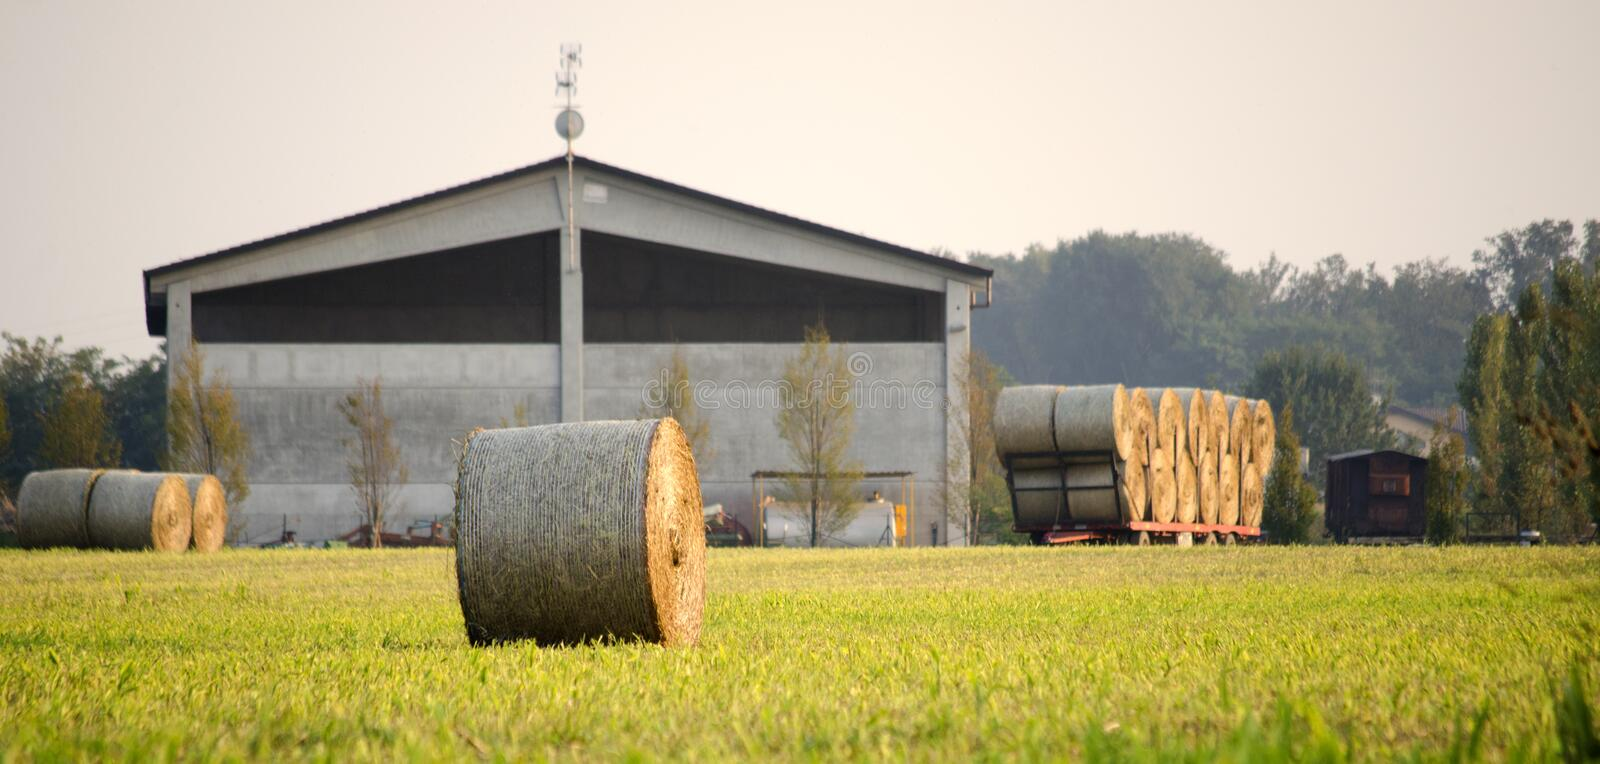 Farm and hay roll stock photo